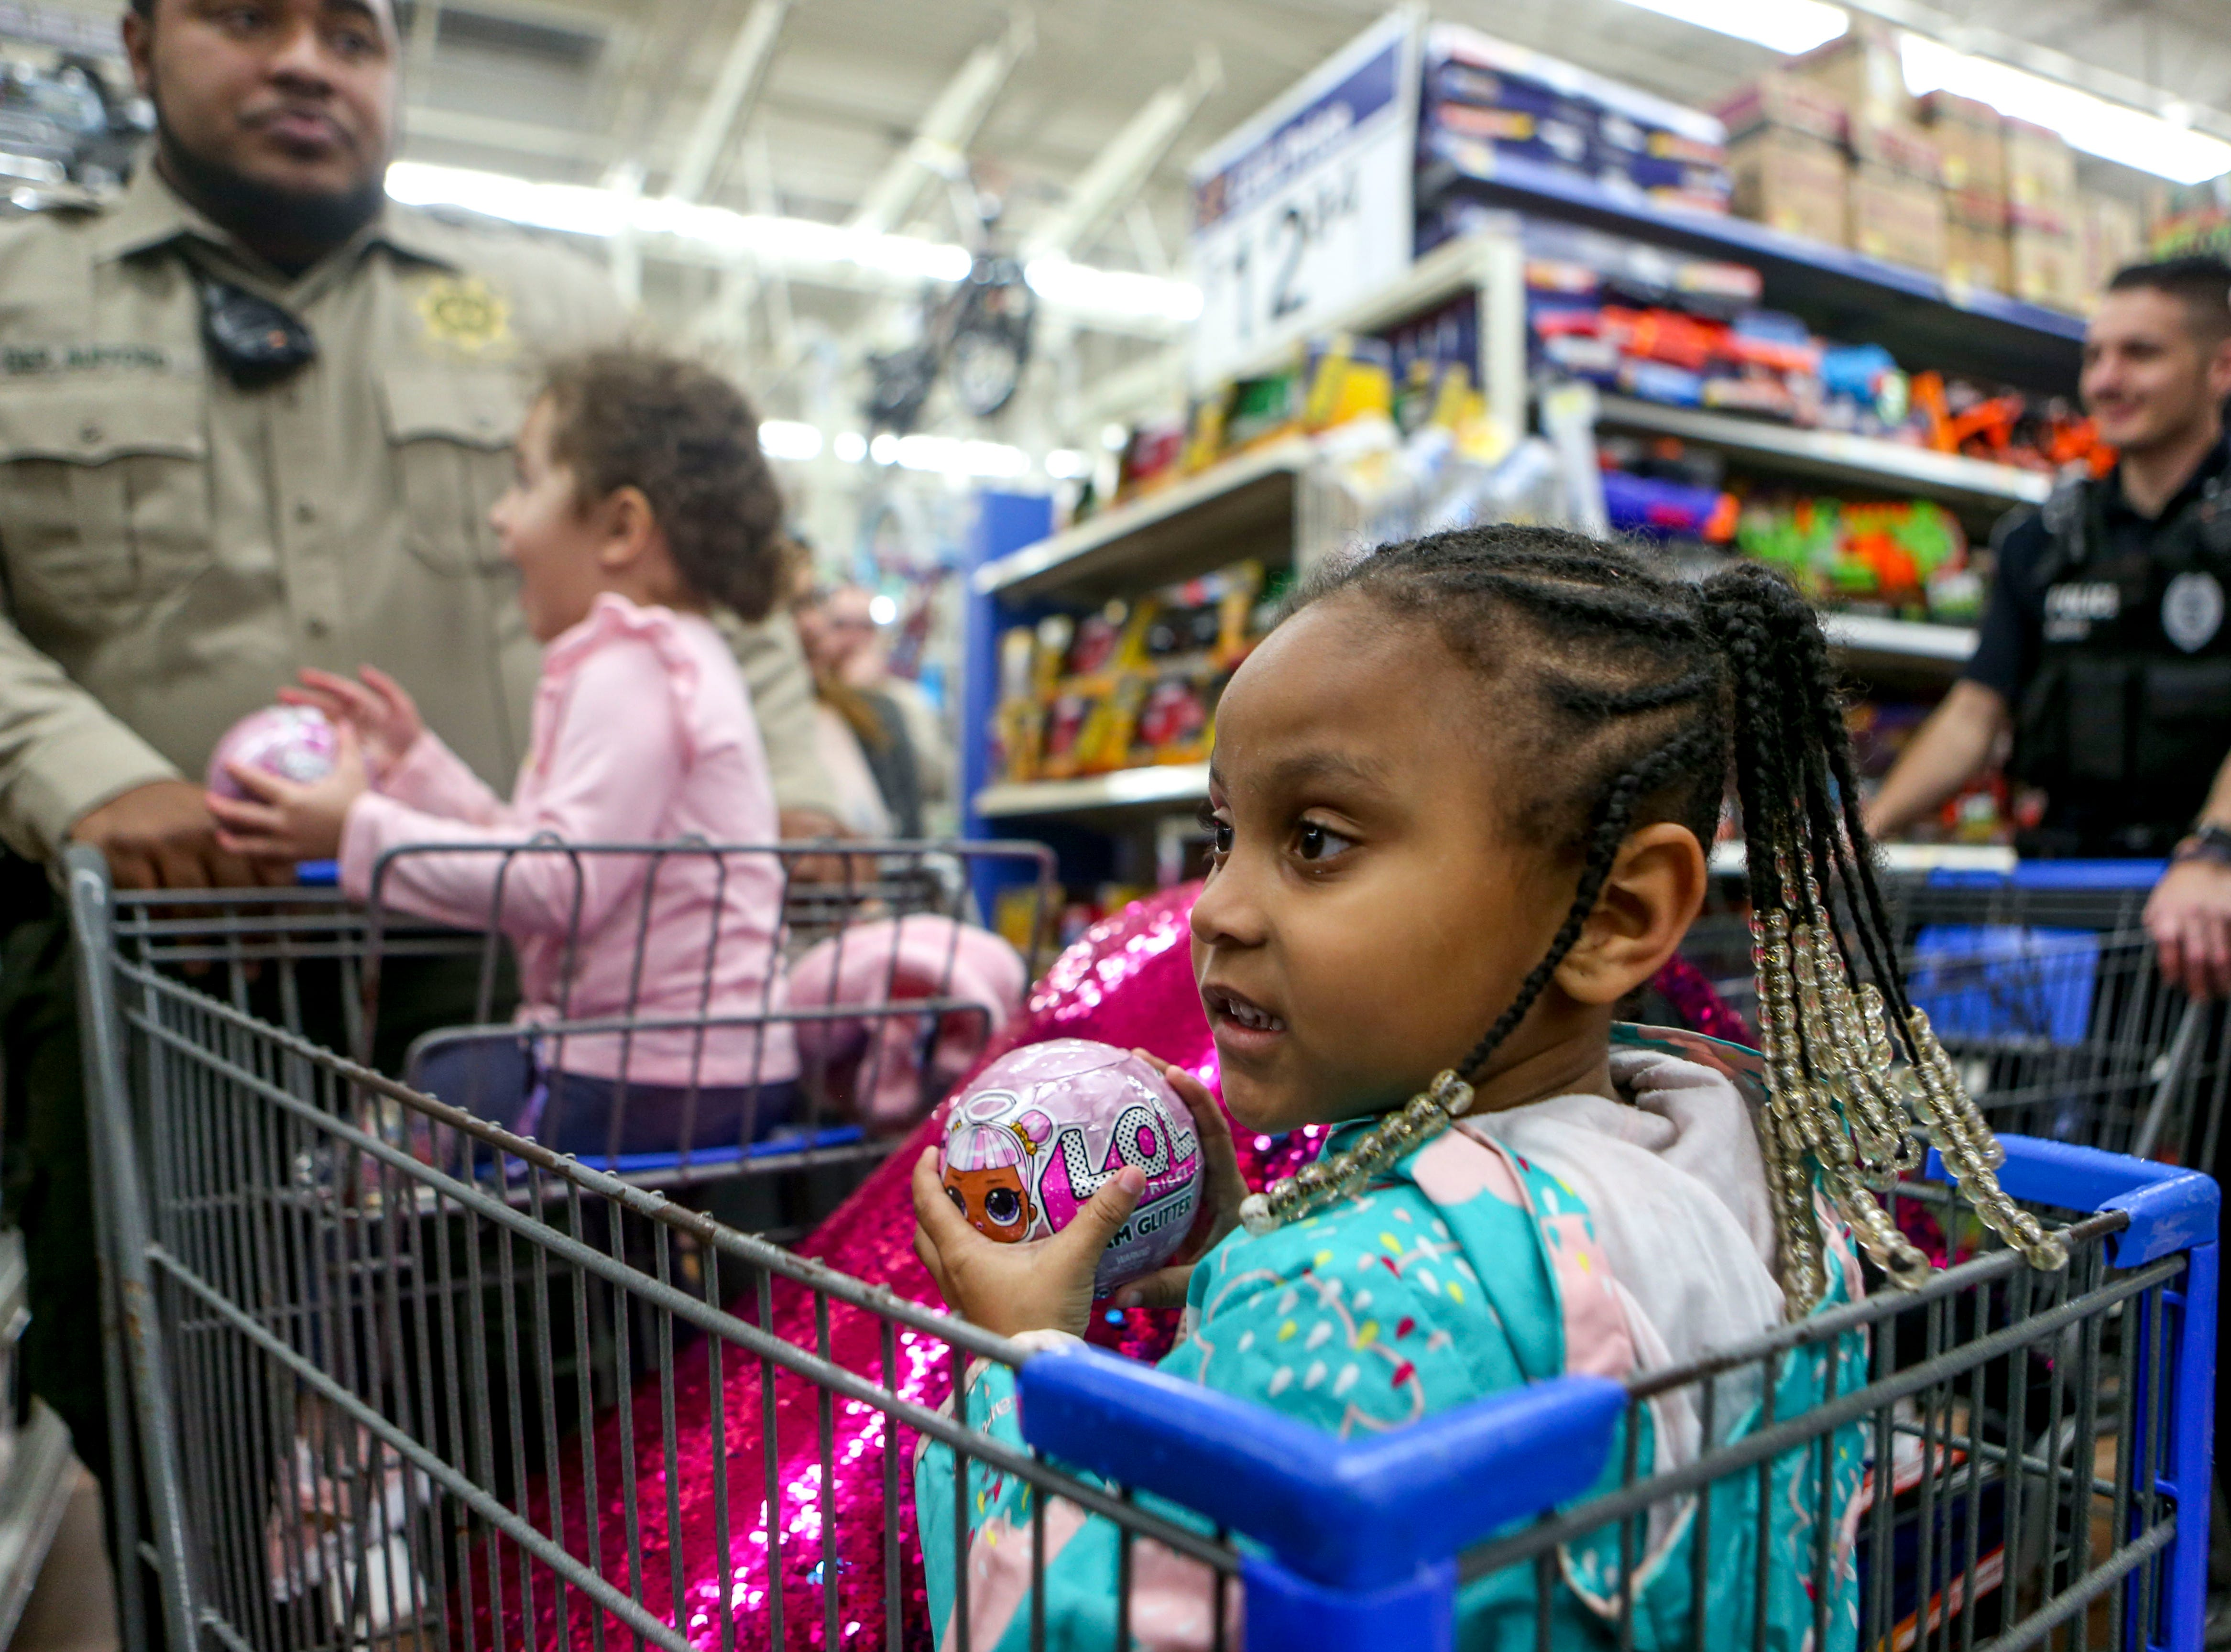 A young shopper gazes down the aisles of toys to snag during shopping time for the annual Shop with a Cop program at Walmart in Milan, Tenn., on Thursday, Dec. 13, 2018.